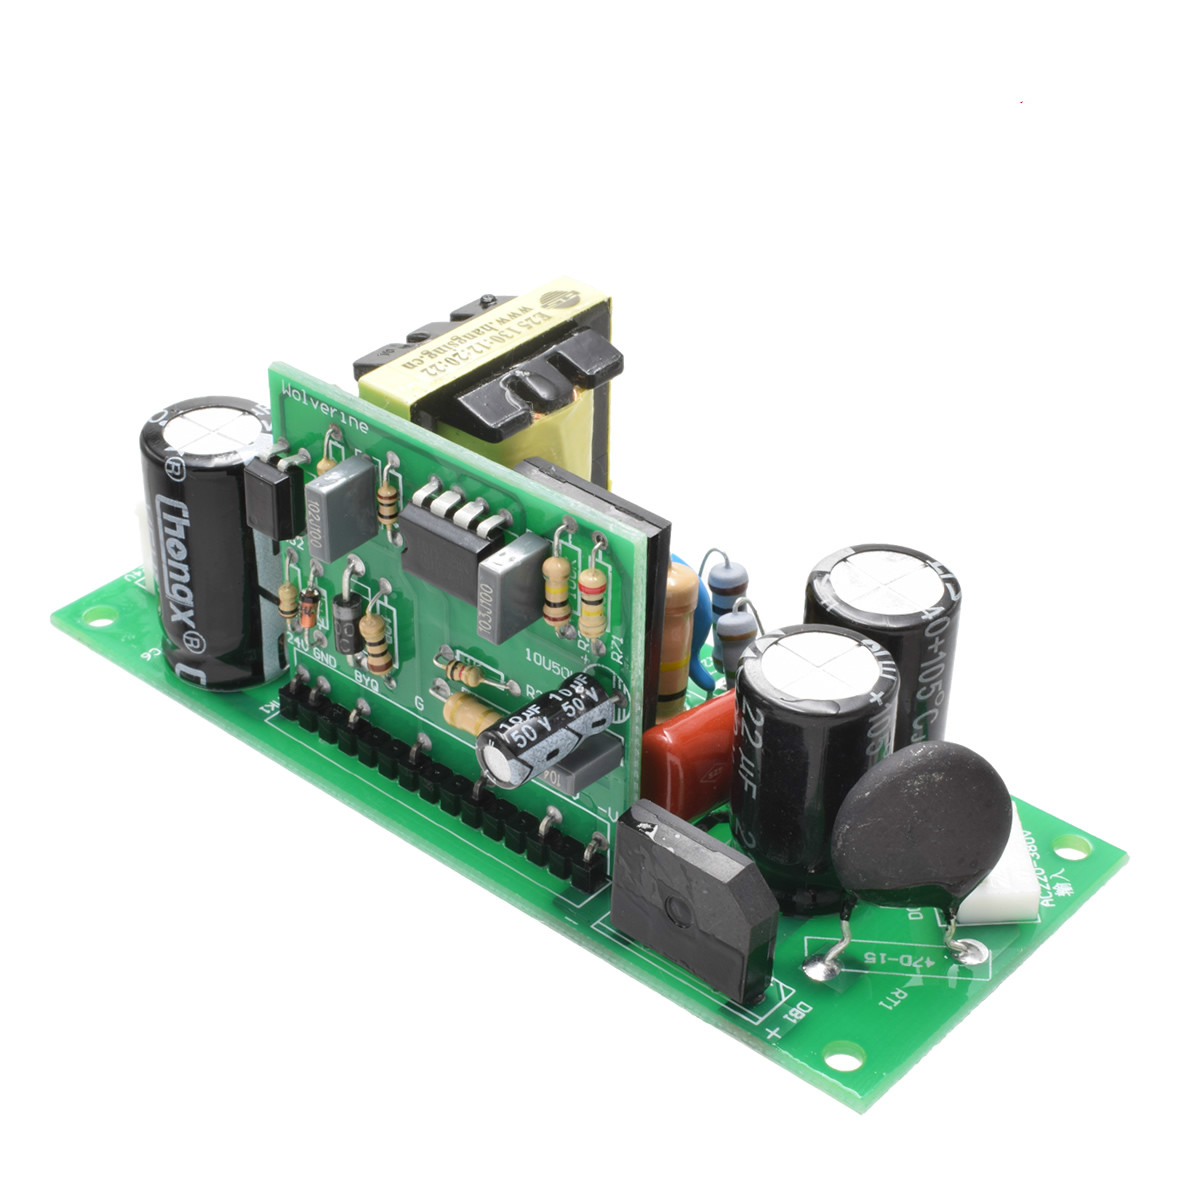 Auxiliary Electric Board For Welding Machine Single Tube Igbt Output 24v Auxiliary Power Supply Dual Voltage Input Leather Bag